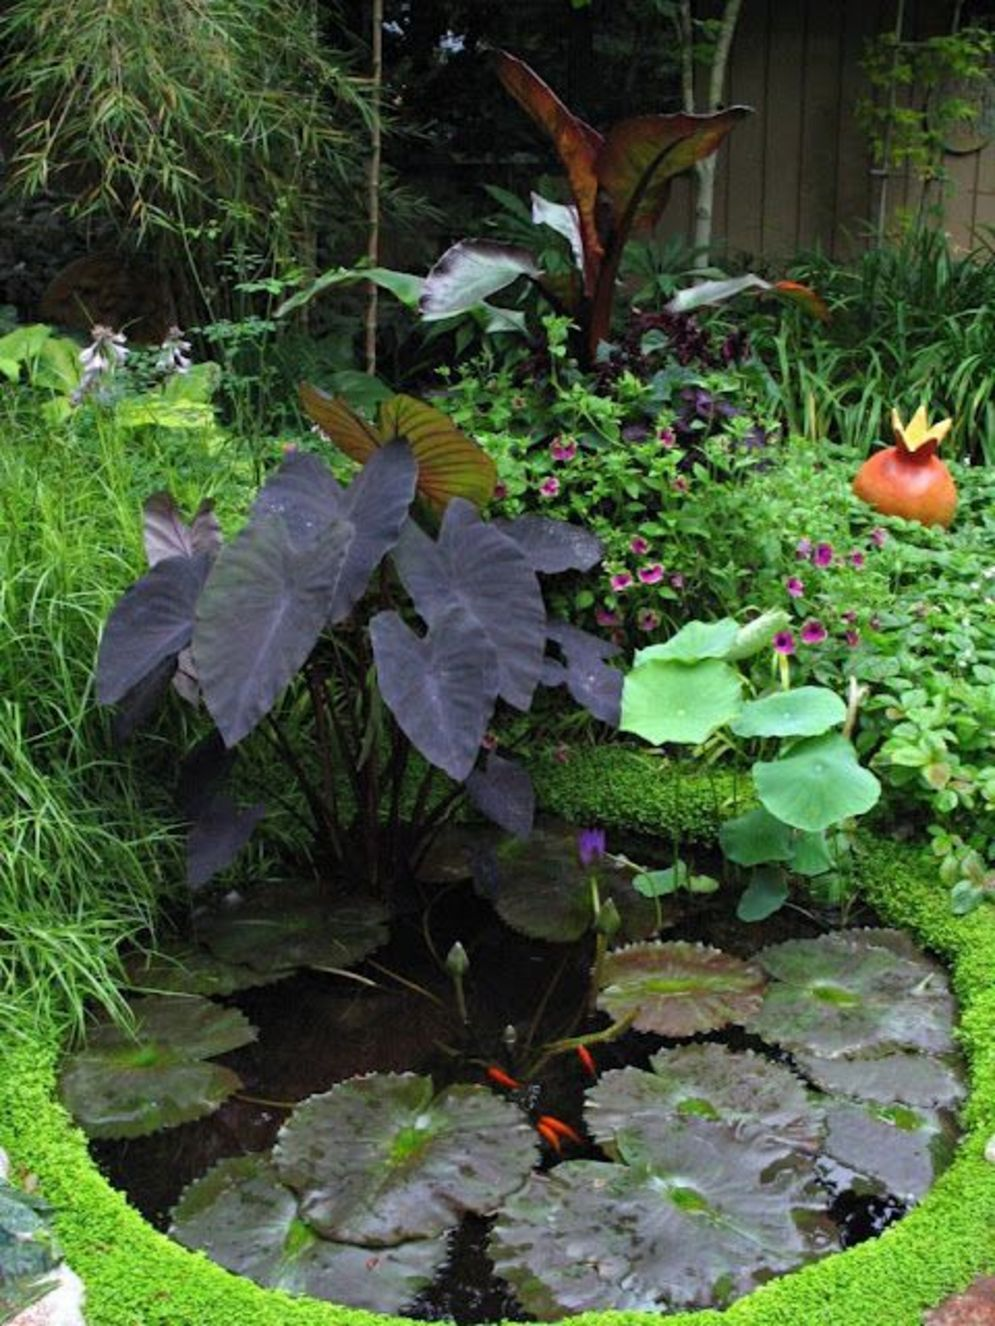 32 Small Fish Pond Designs Look Perfect for Improving Tiny Garden Landscape #elephantearsandtropicals